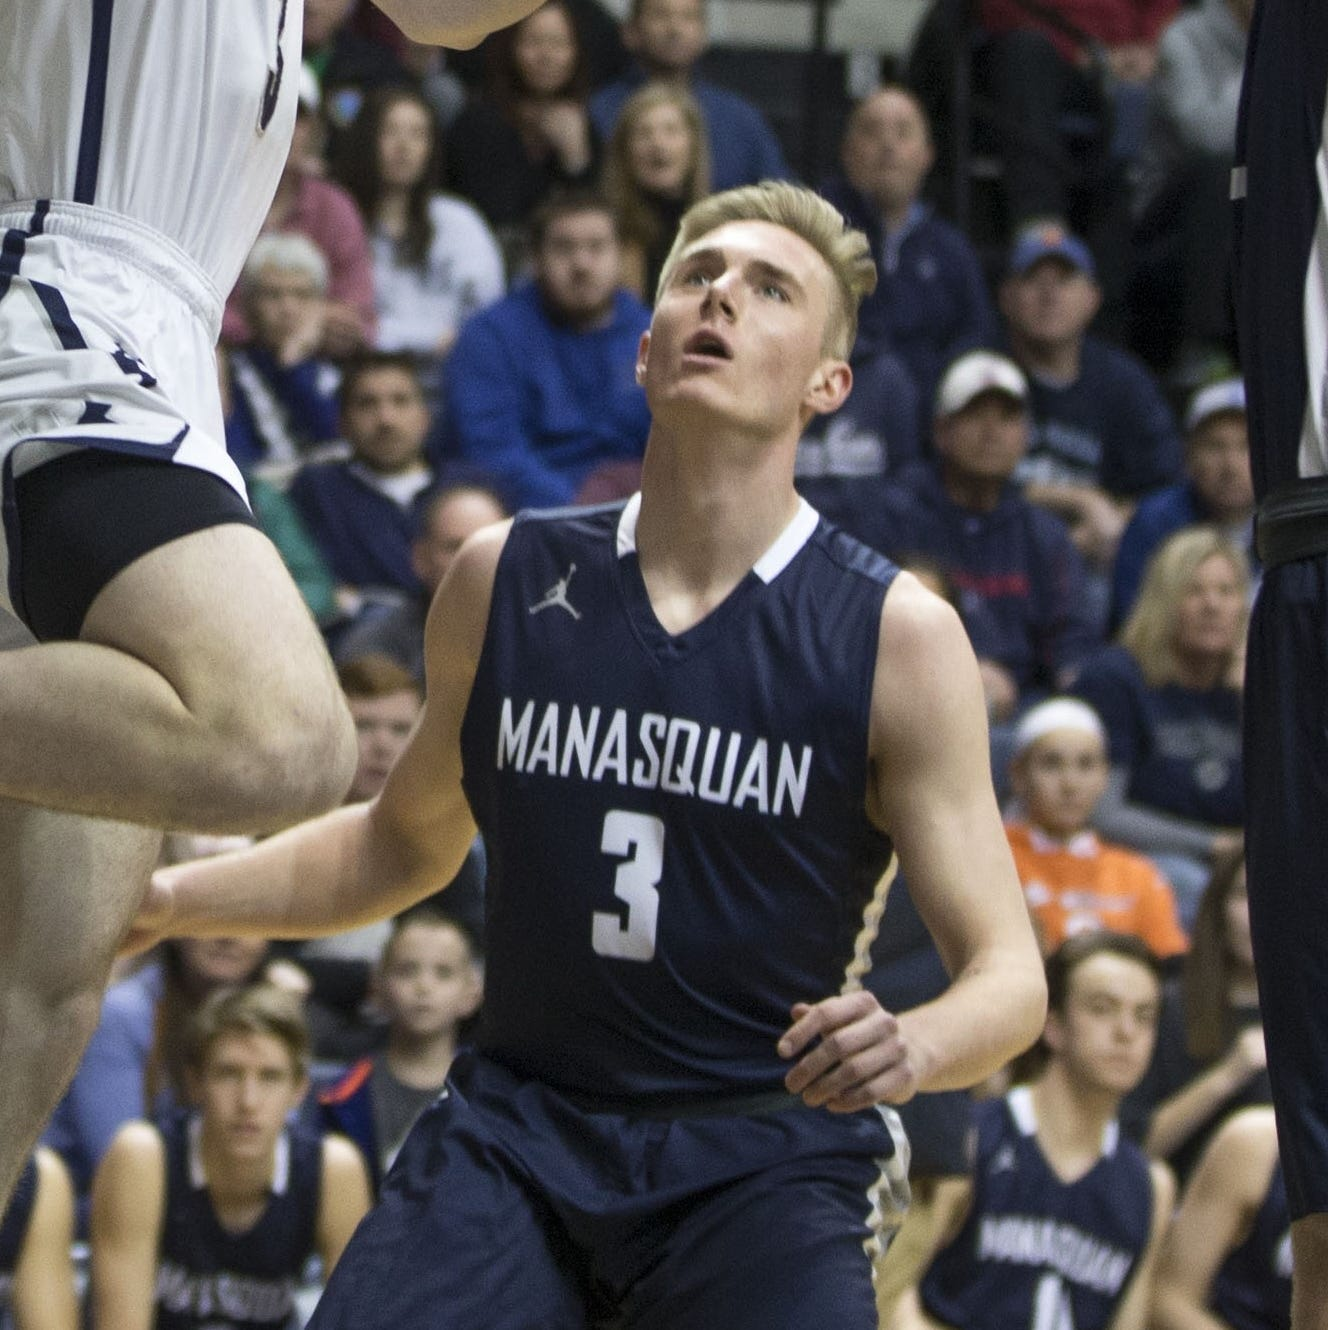 Can Manasquan's Brad McCabe play Division I basketball? We're about to find out